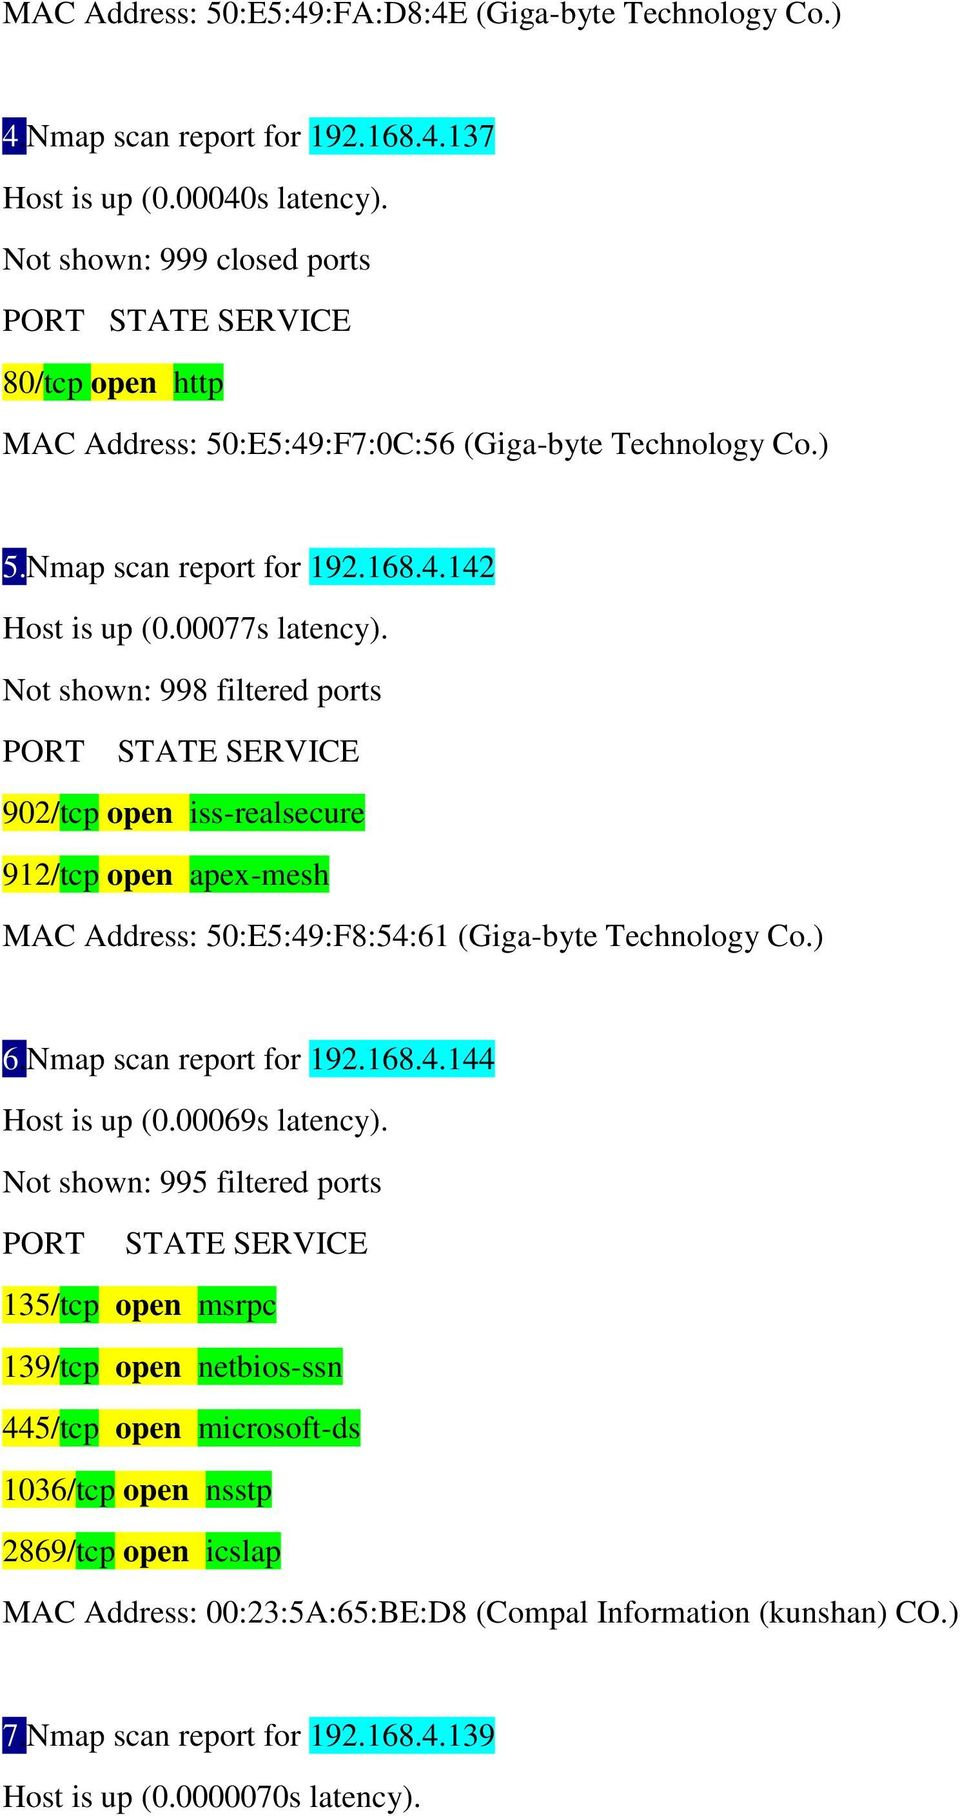 Not shown: 998 filtered ports PORT STATE SERVICE 902/tcp open iss-realsecure 912/tcp open apex-mesh MAC Address: 50:E5:49:F8:54:61 (Giga-byte Technology Co.) 6.Nmap scan report for 192.168.4.144 Host is up (0.